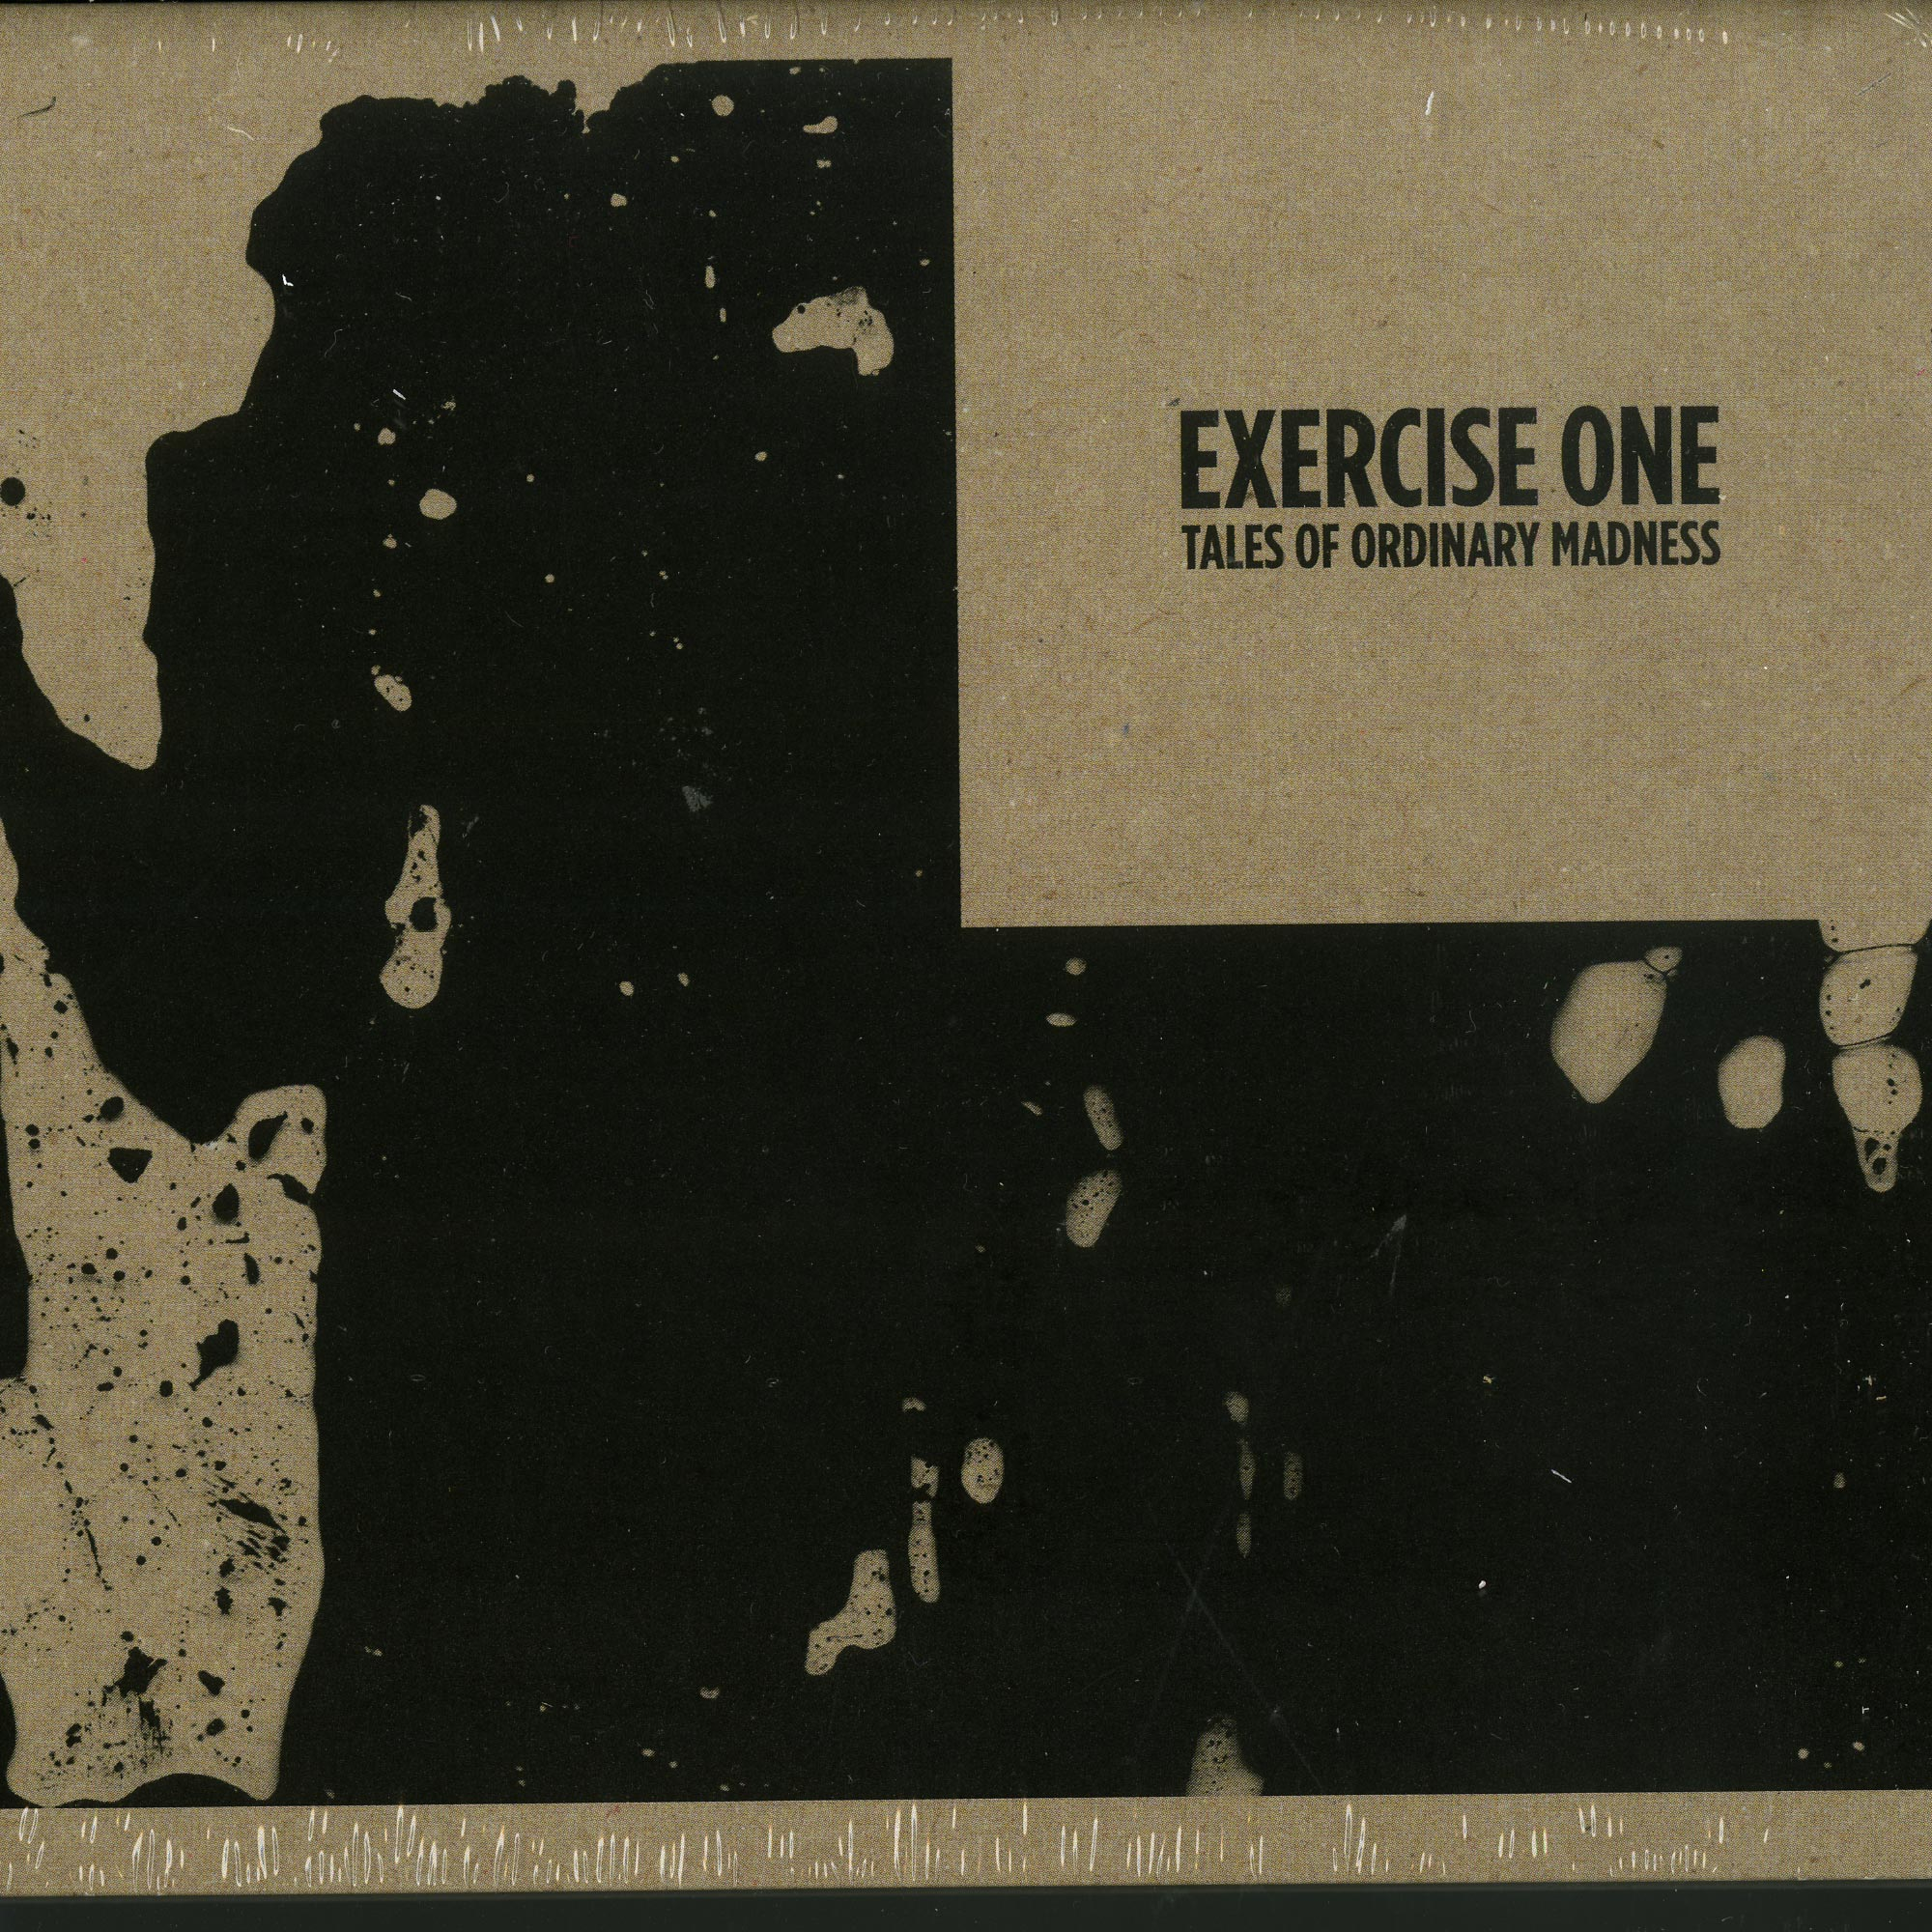 Exercise One - TALES OF ORDINARY MADNESS